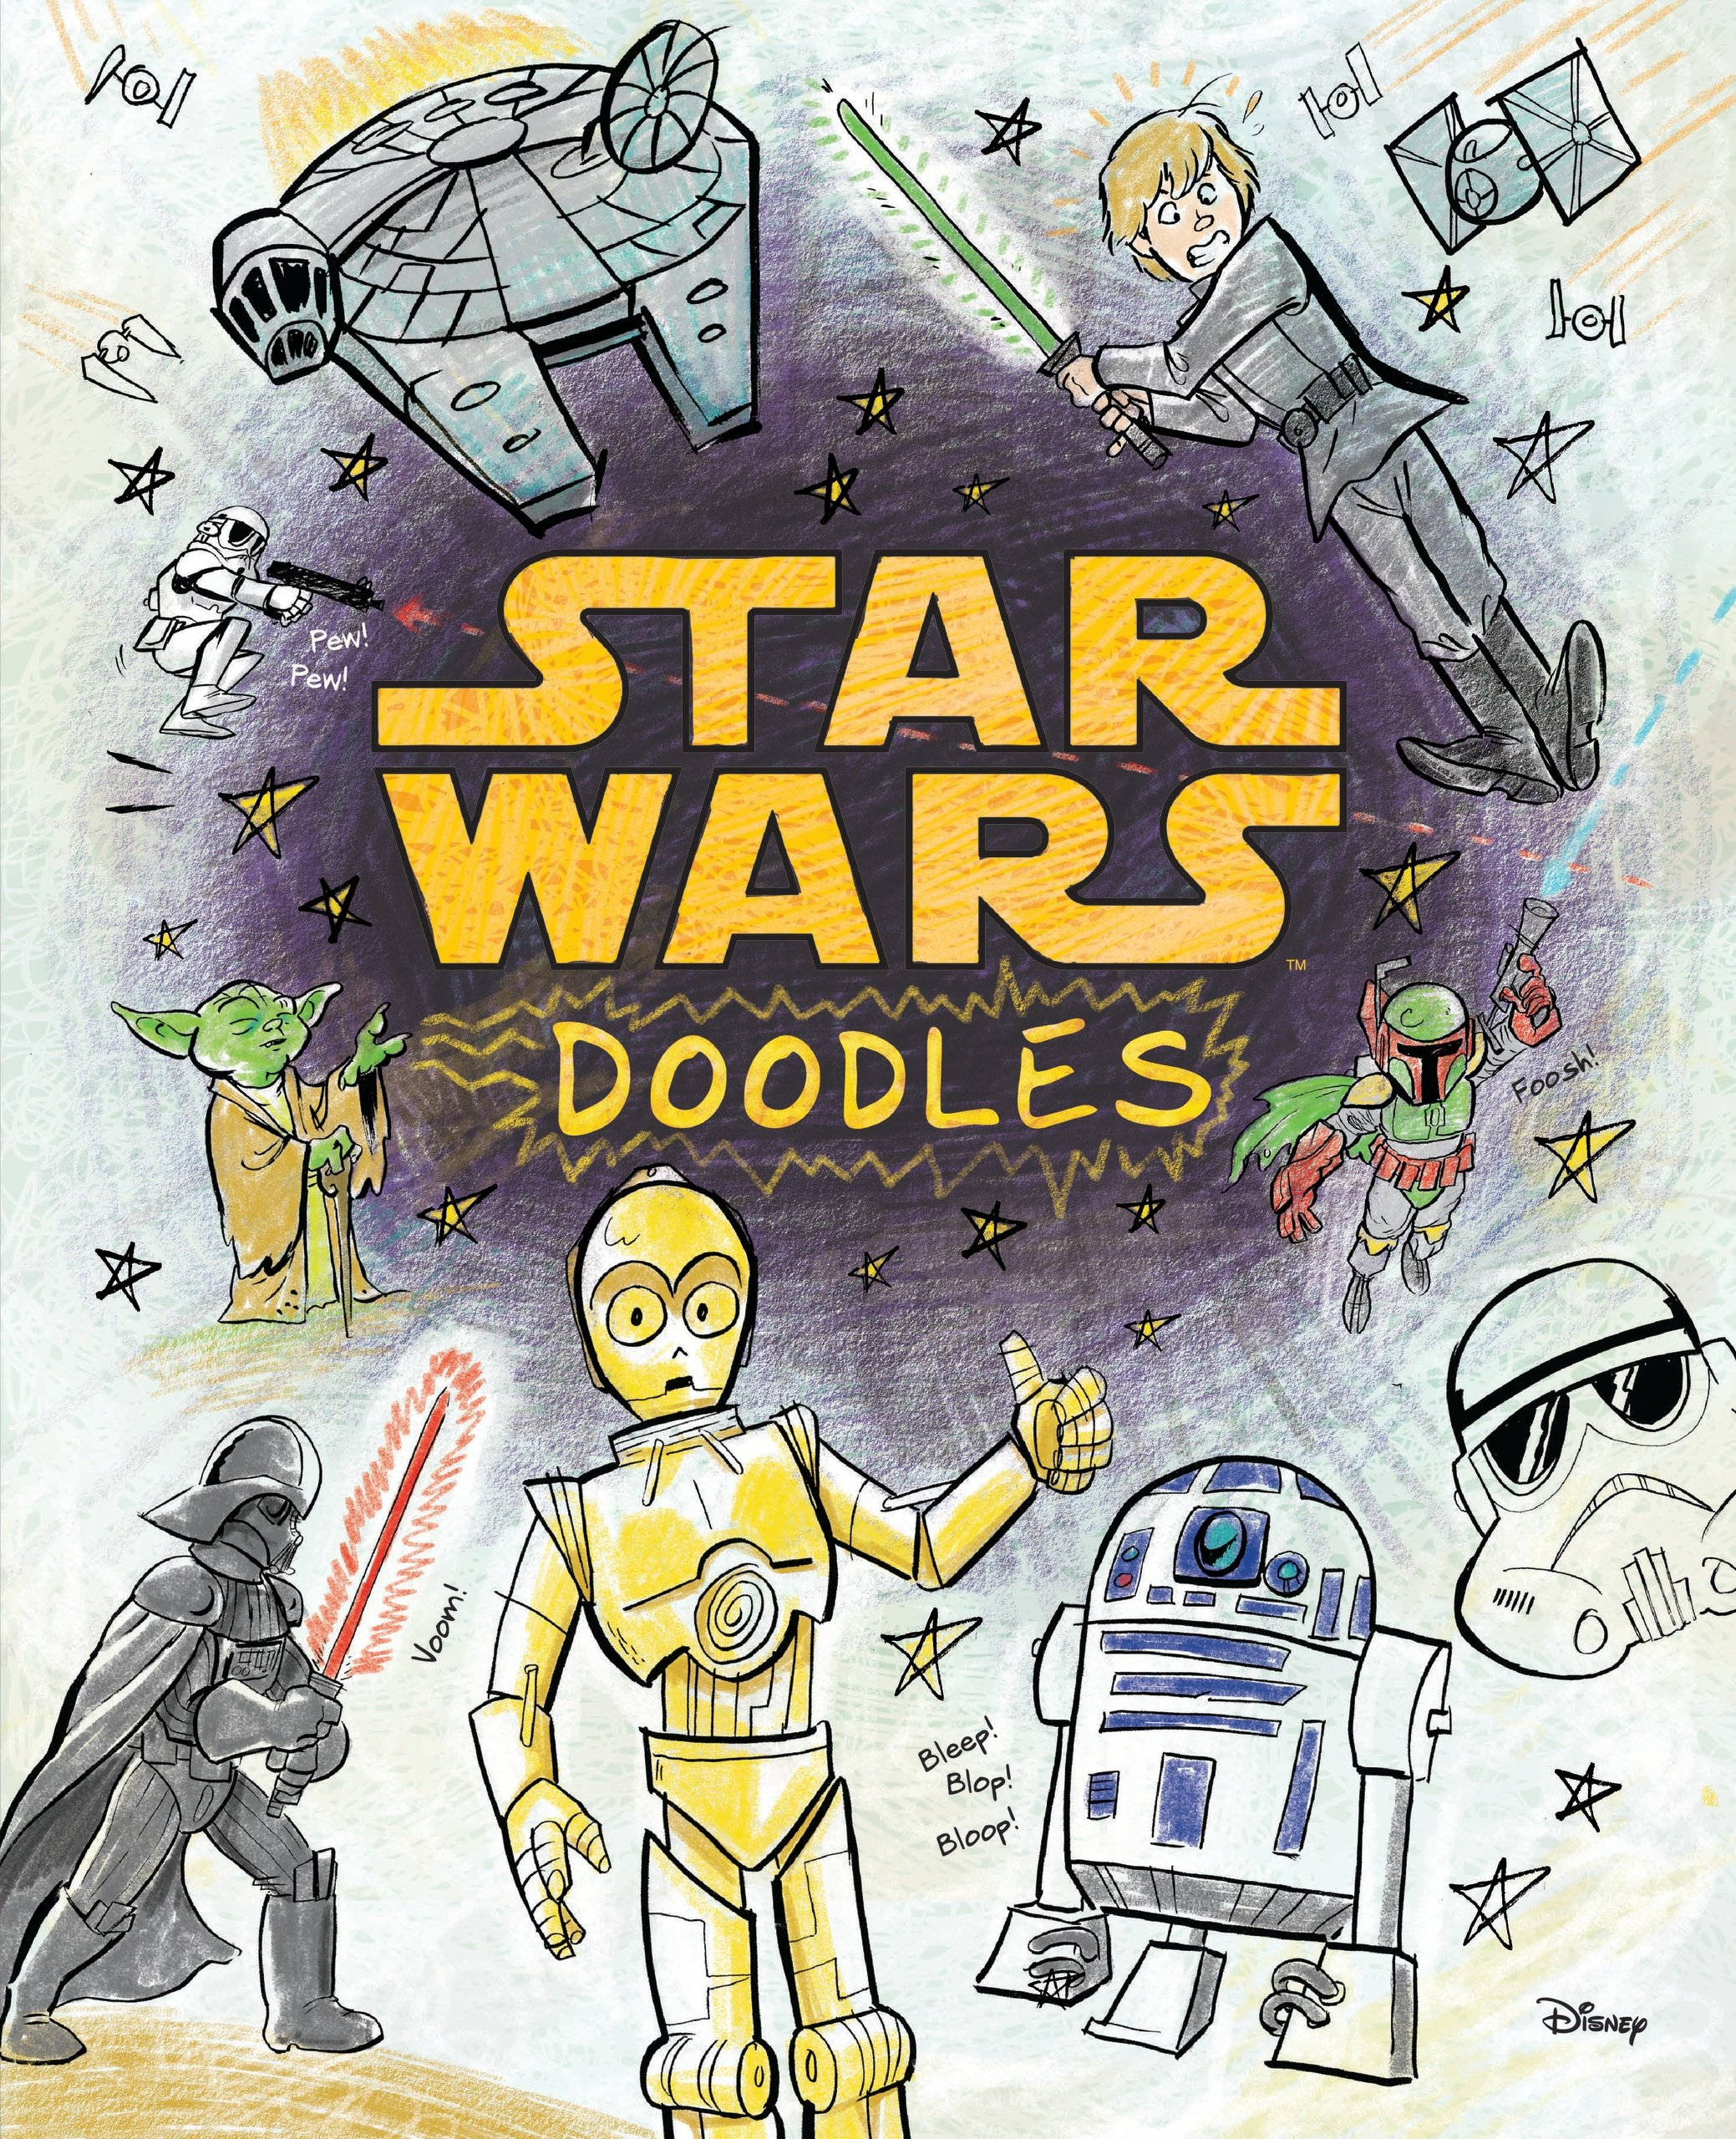 Star Wars Doodles